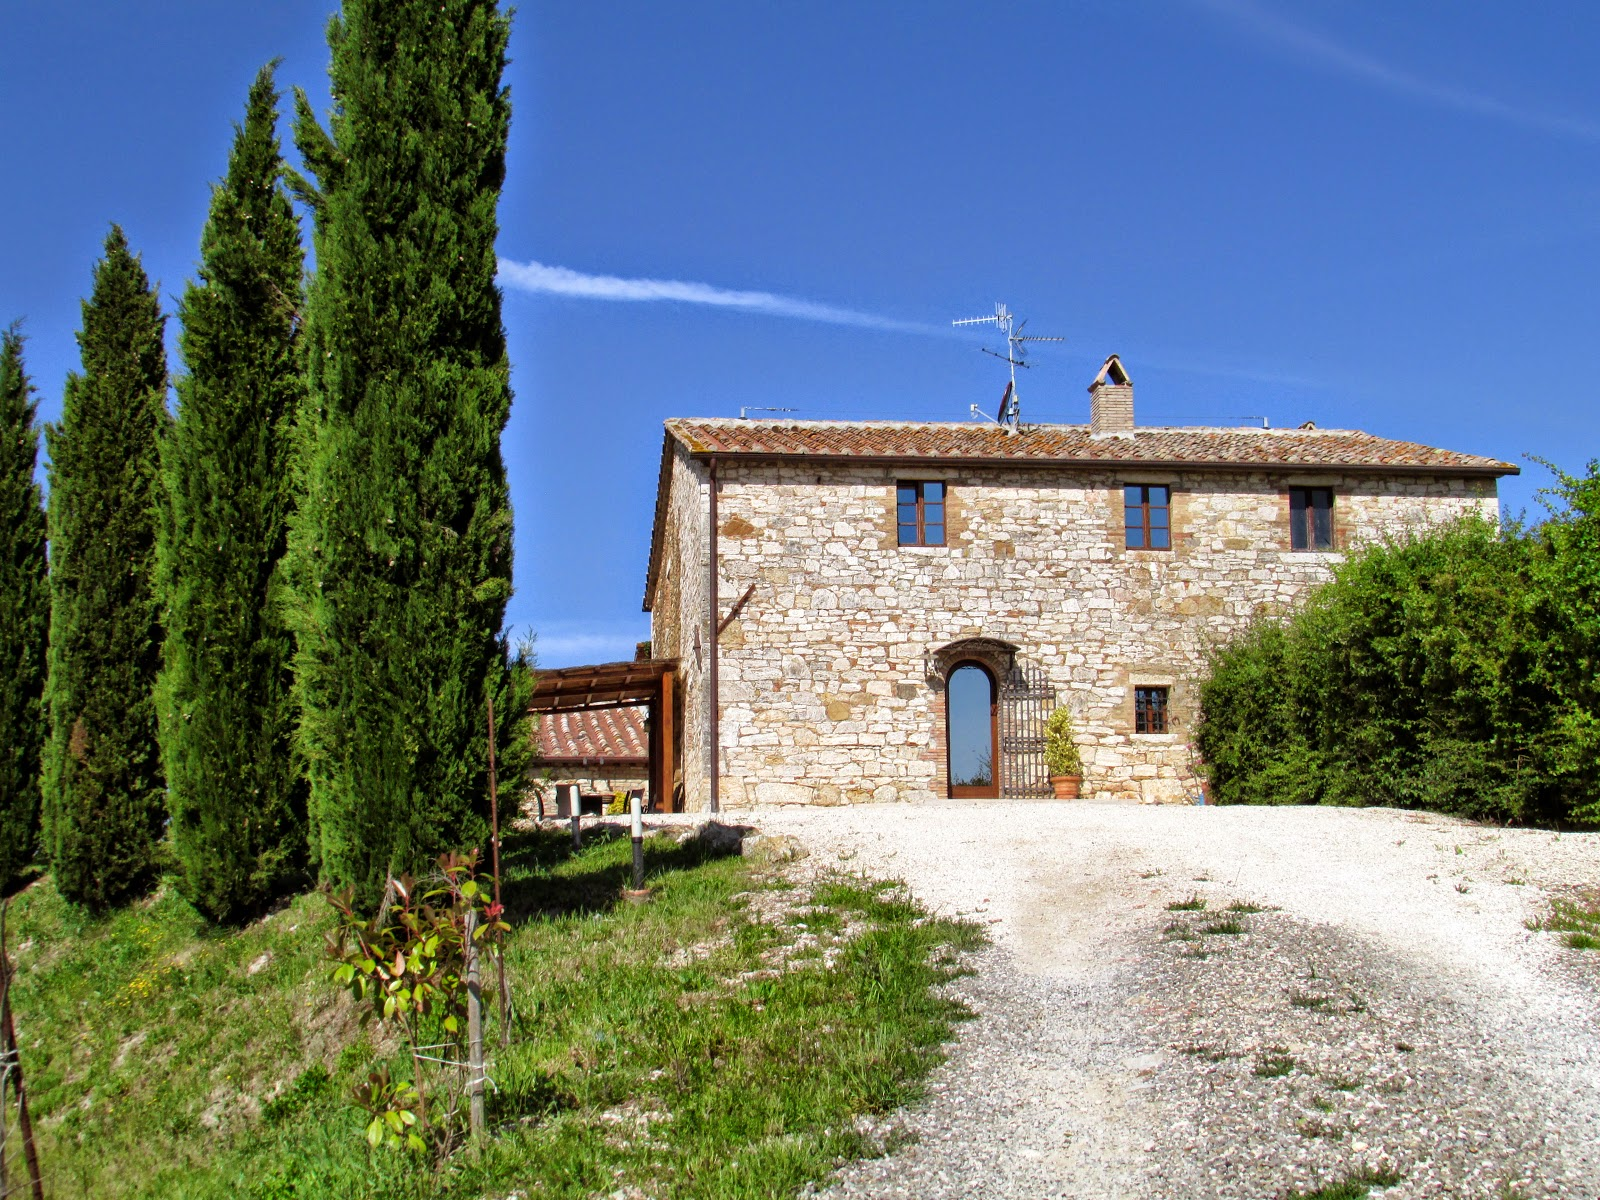 A farm-house in Val D'Orcia [Photo credits: Lorena Terenghi, photo taken at Podere Spagliarda]